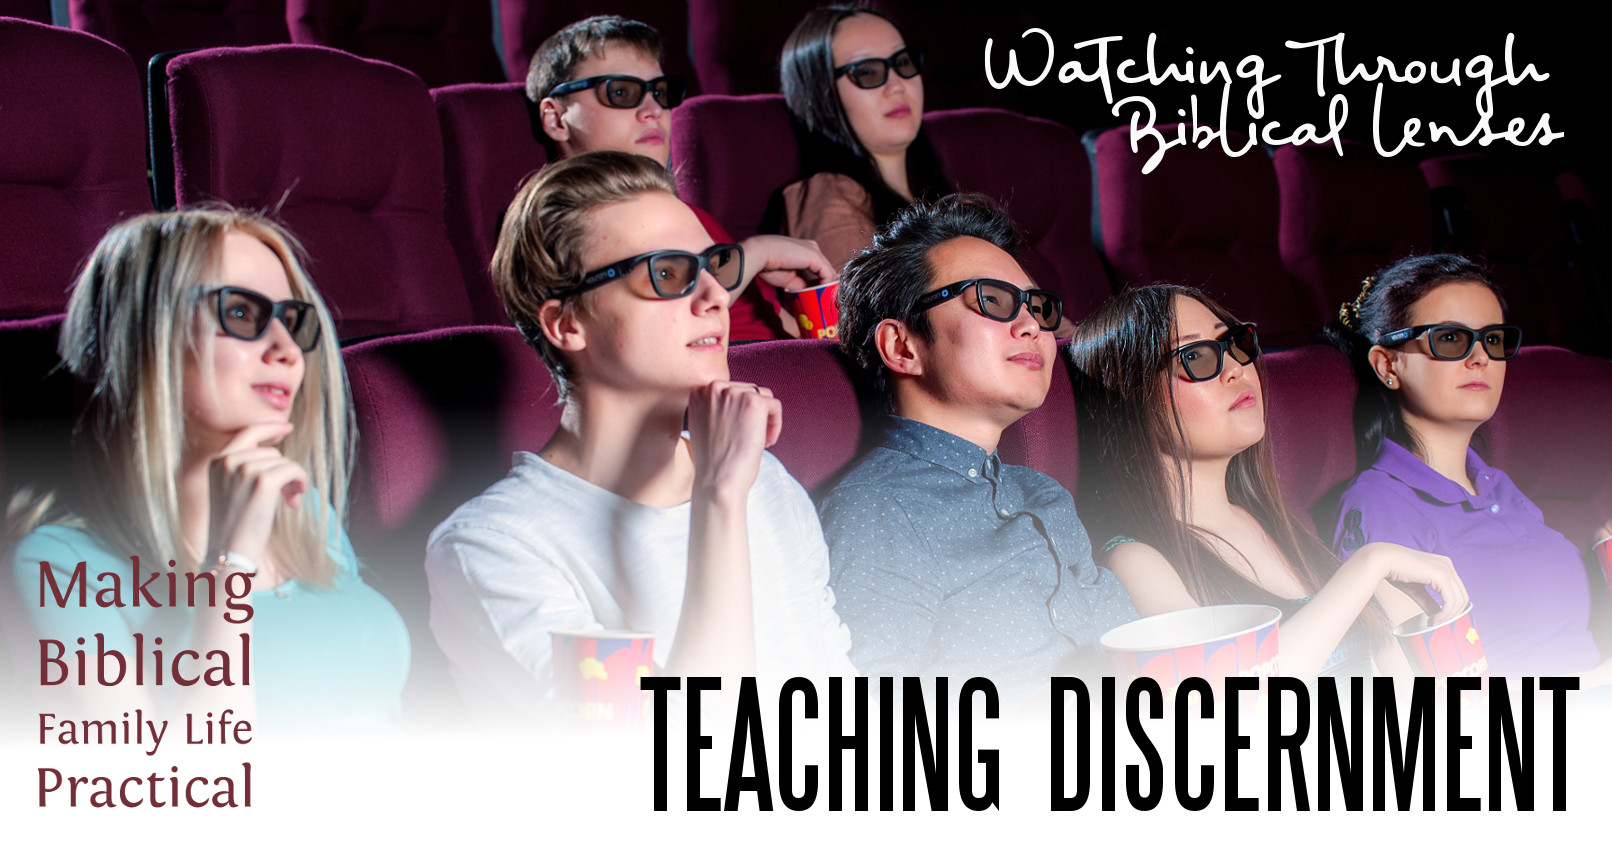 How do you teach discernment to your teens?